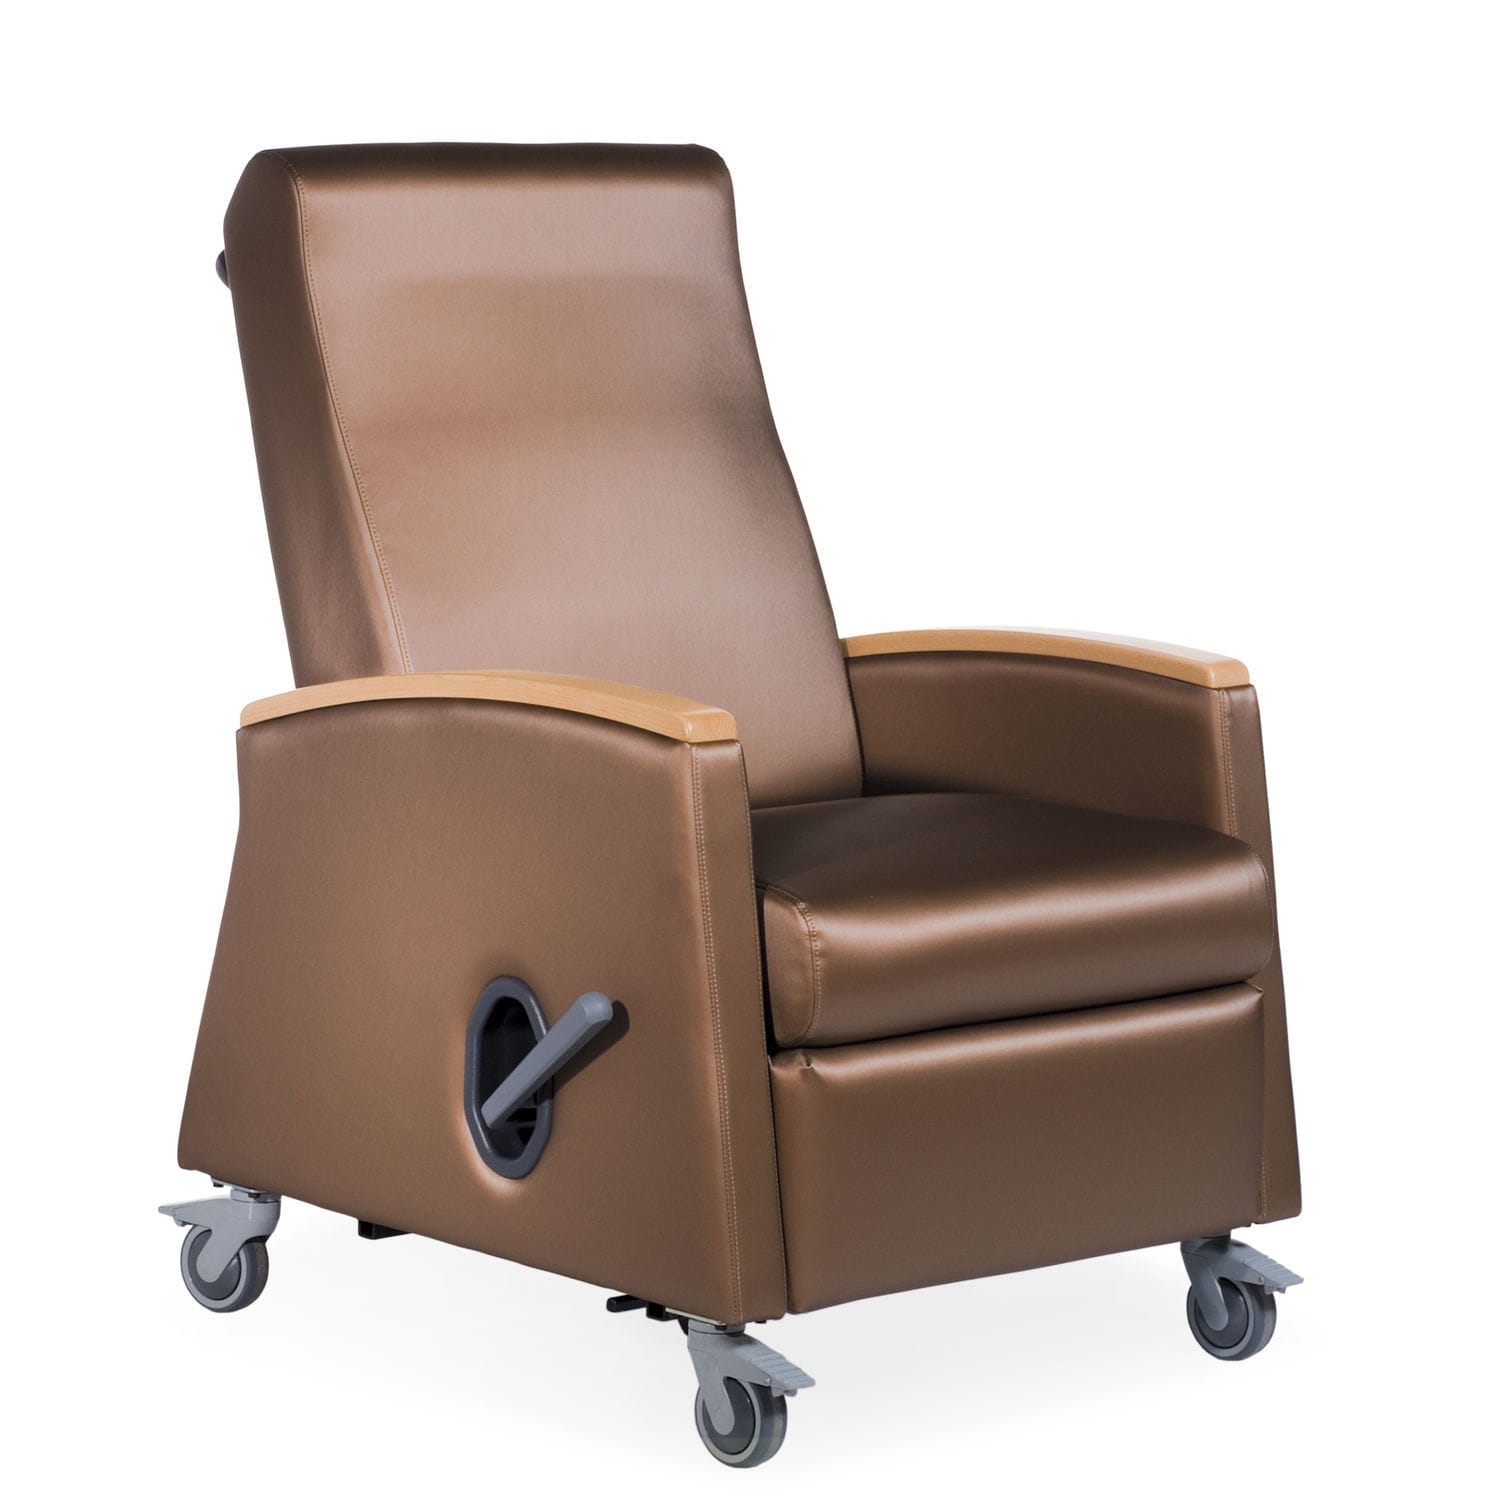 hospital recliner and navona to gallery peru decoration rise electric cream converts remi best bed sofa tilt home chair reclining inflatable